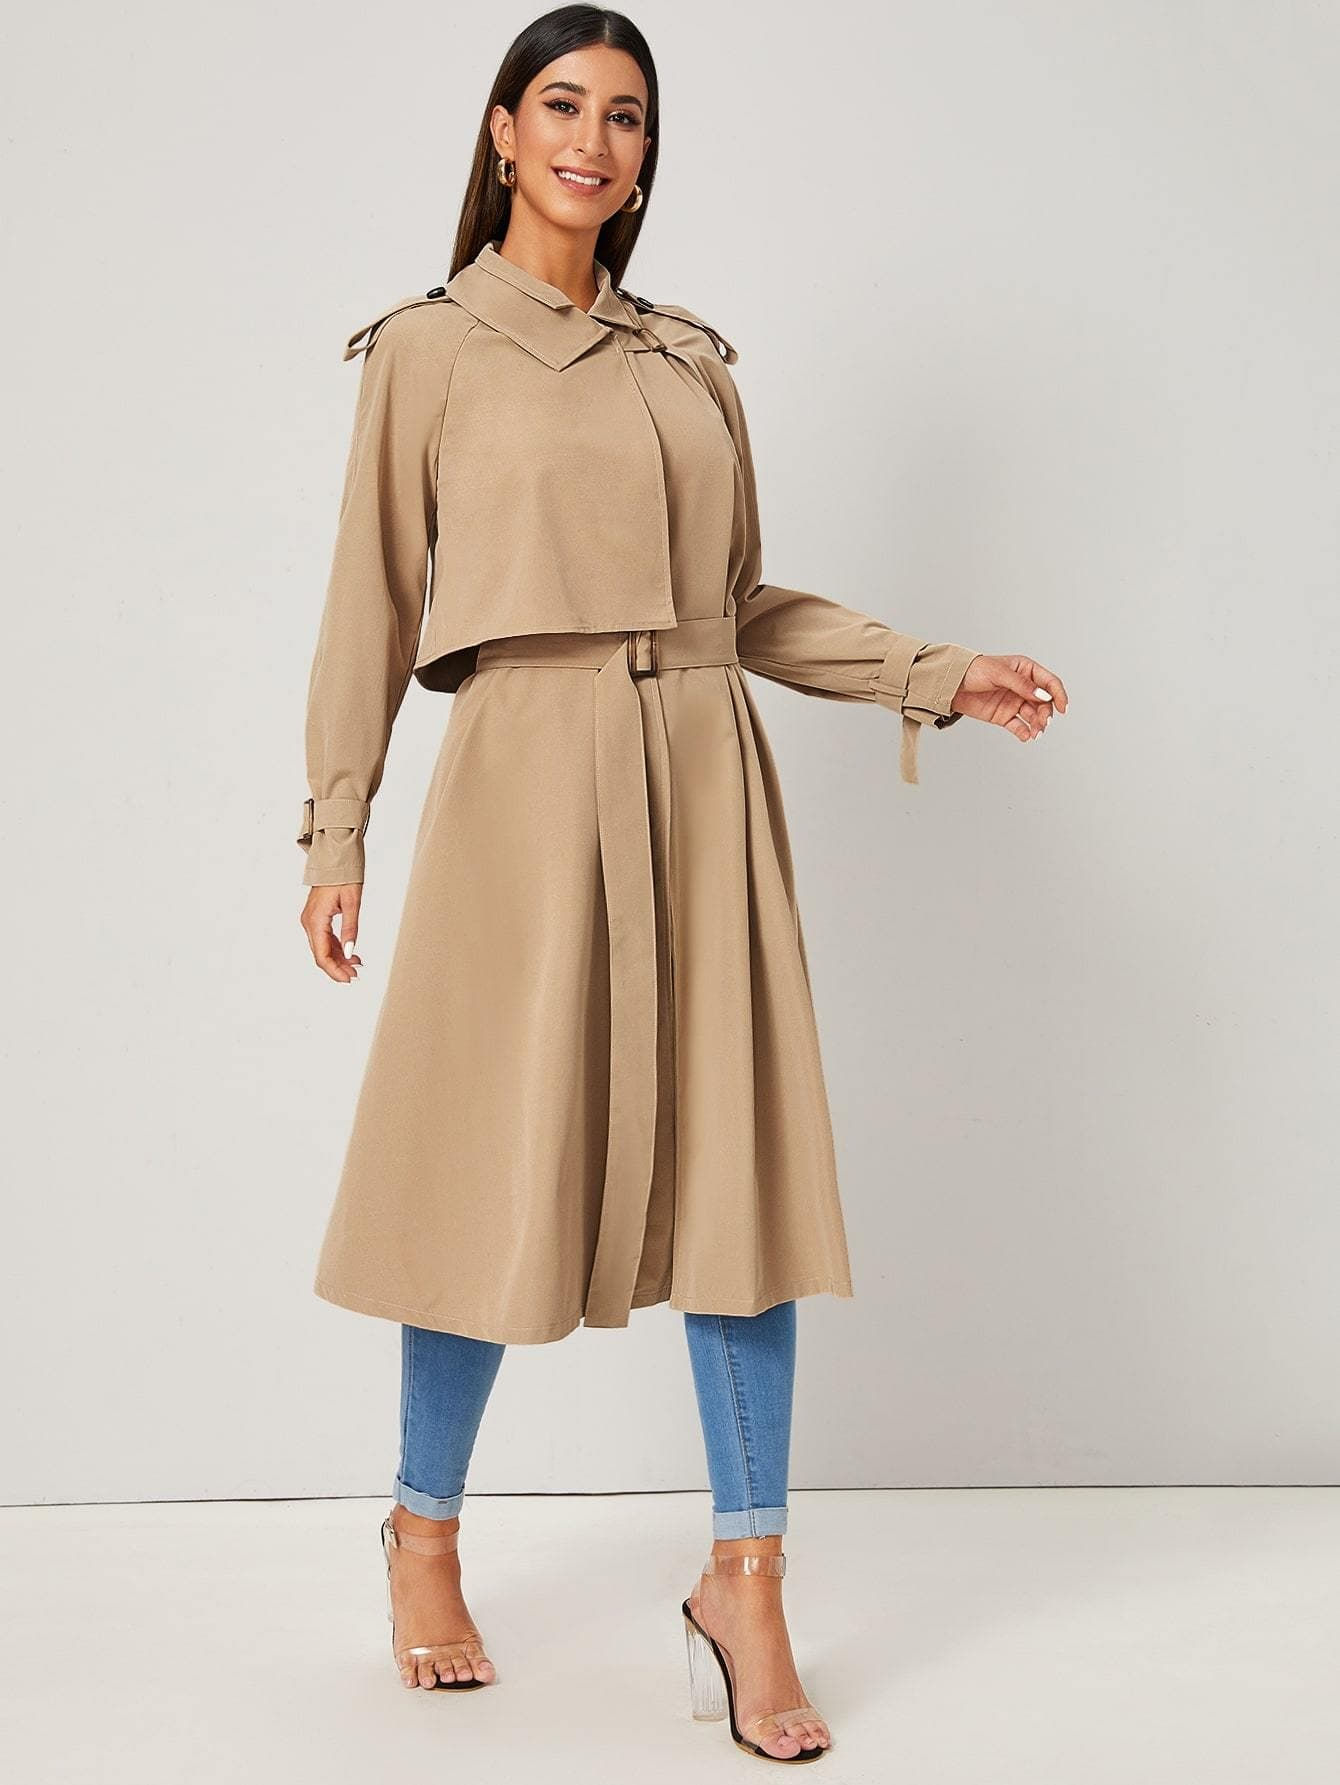 Raglan Sleeve Buckle Belted Trench Coat - FLJ CORPORATIONS